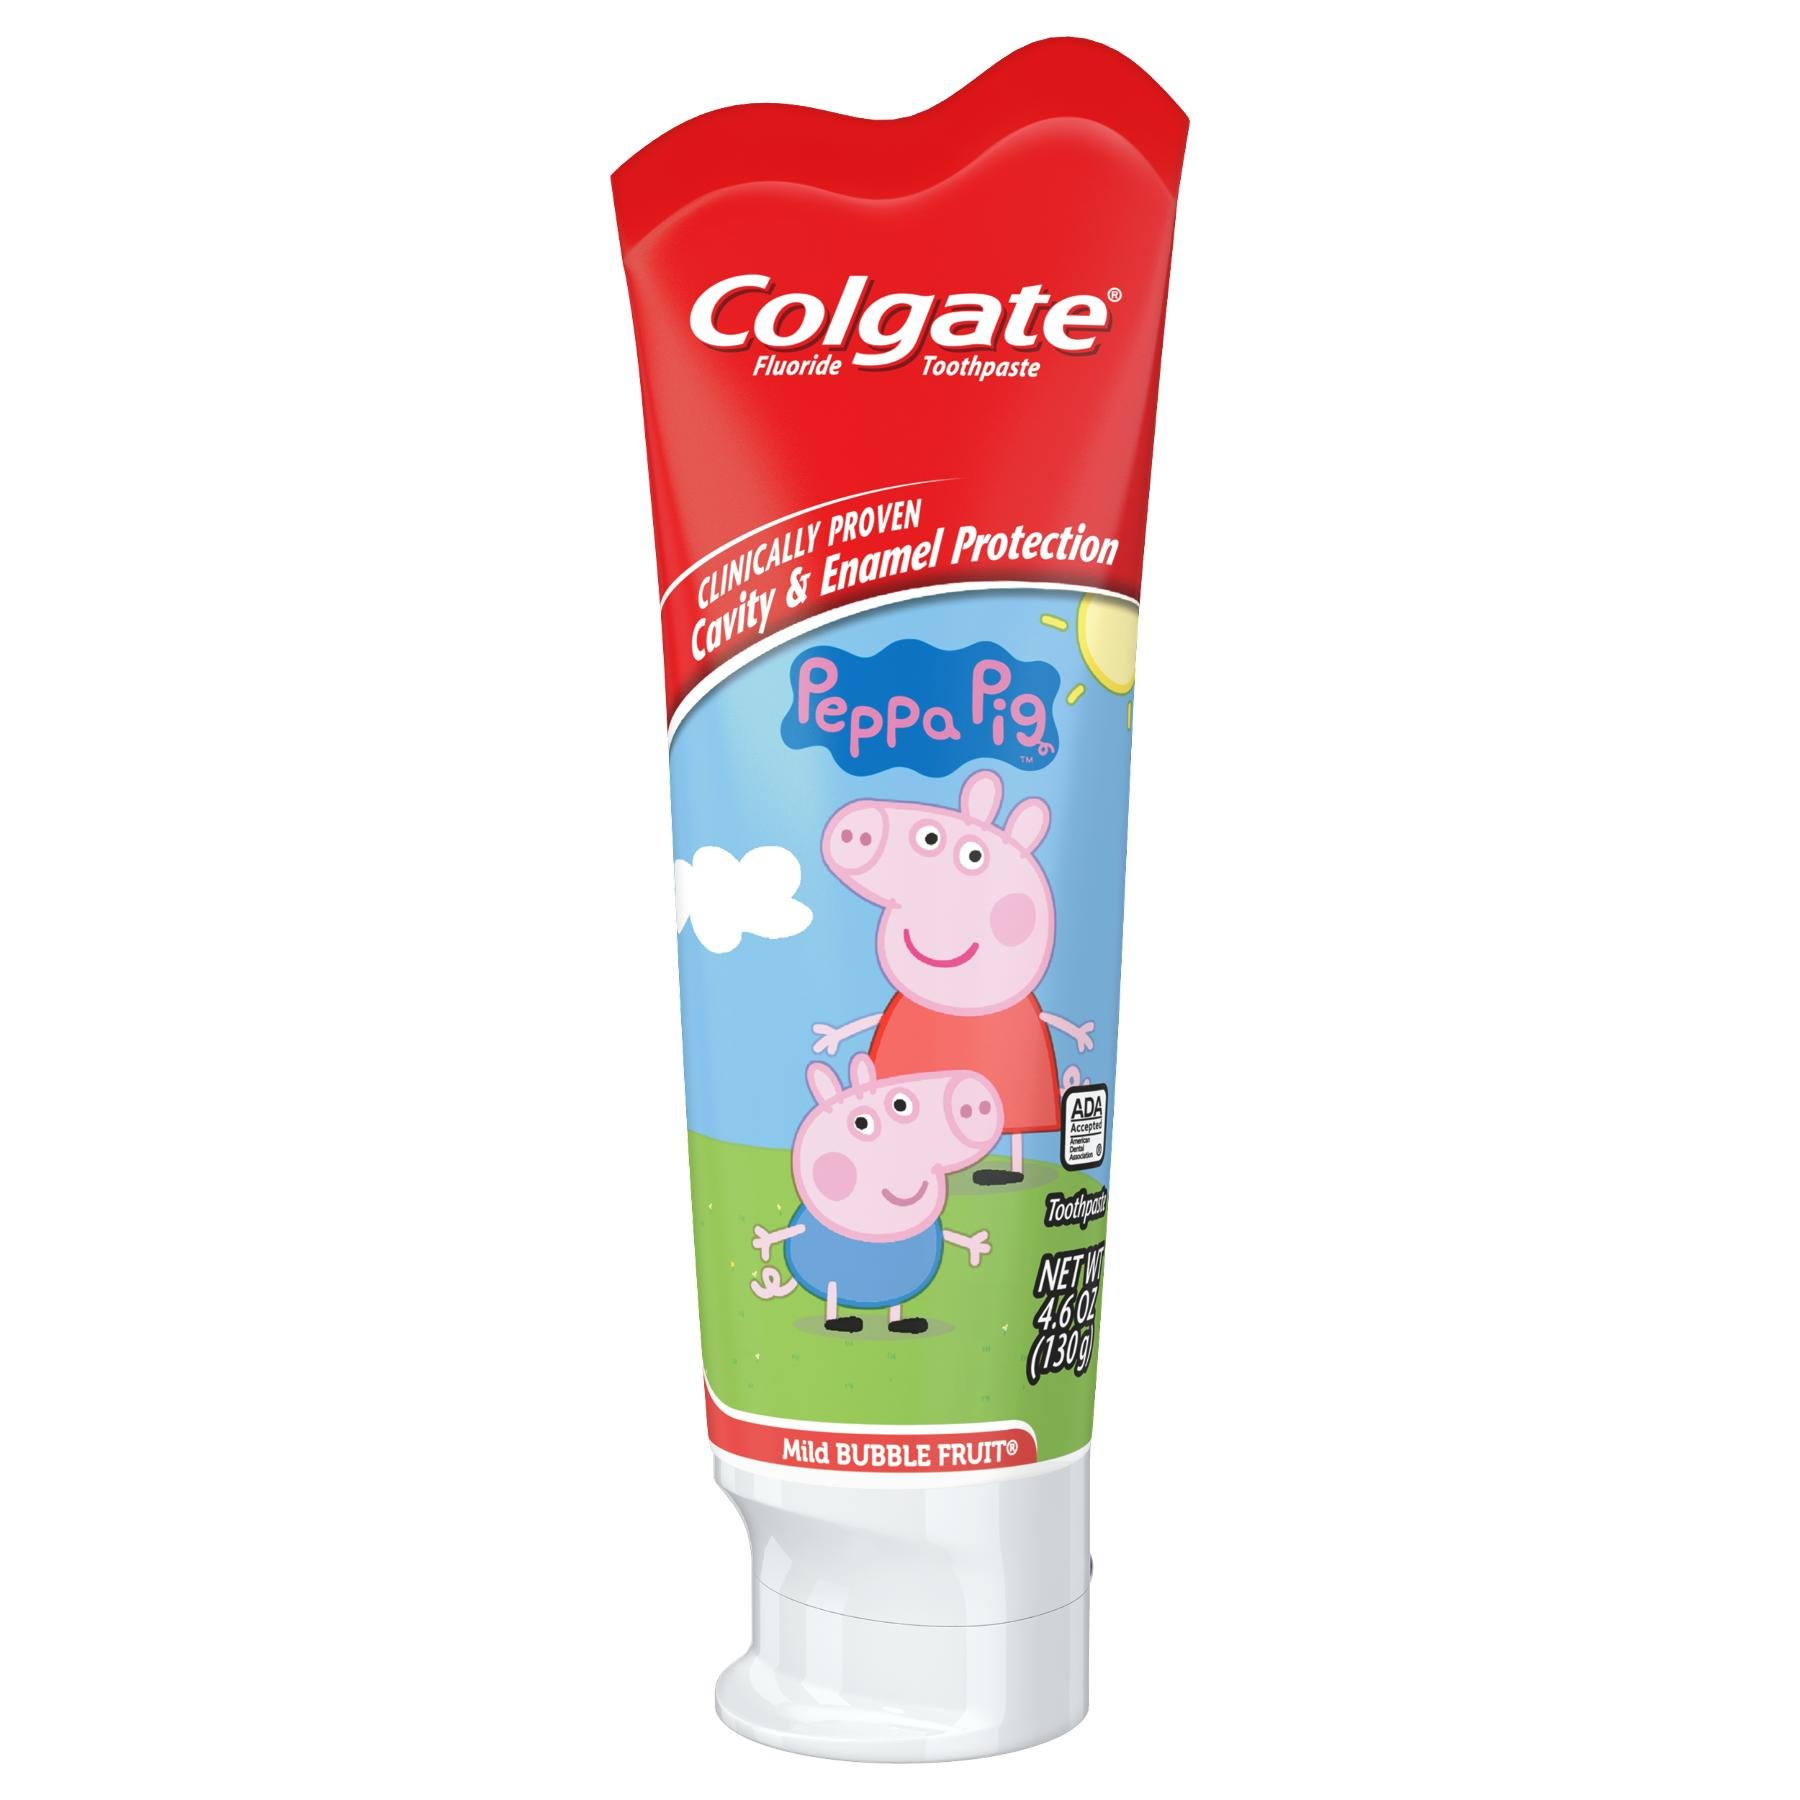 Colgate Kids Fluoride Toothpaste, Peppa Pig, 4.6 Ounce